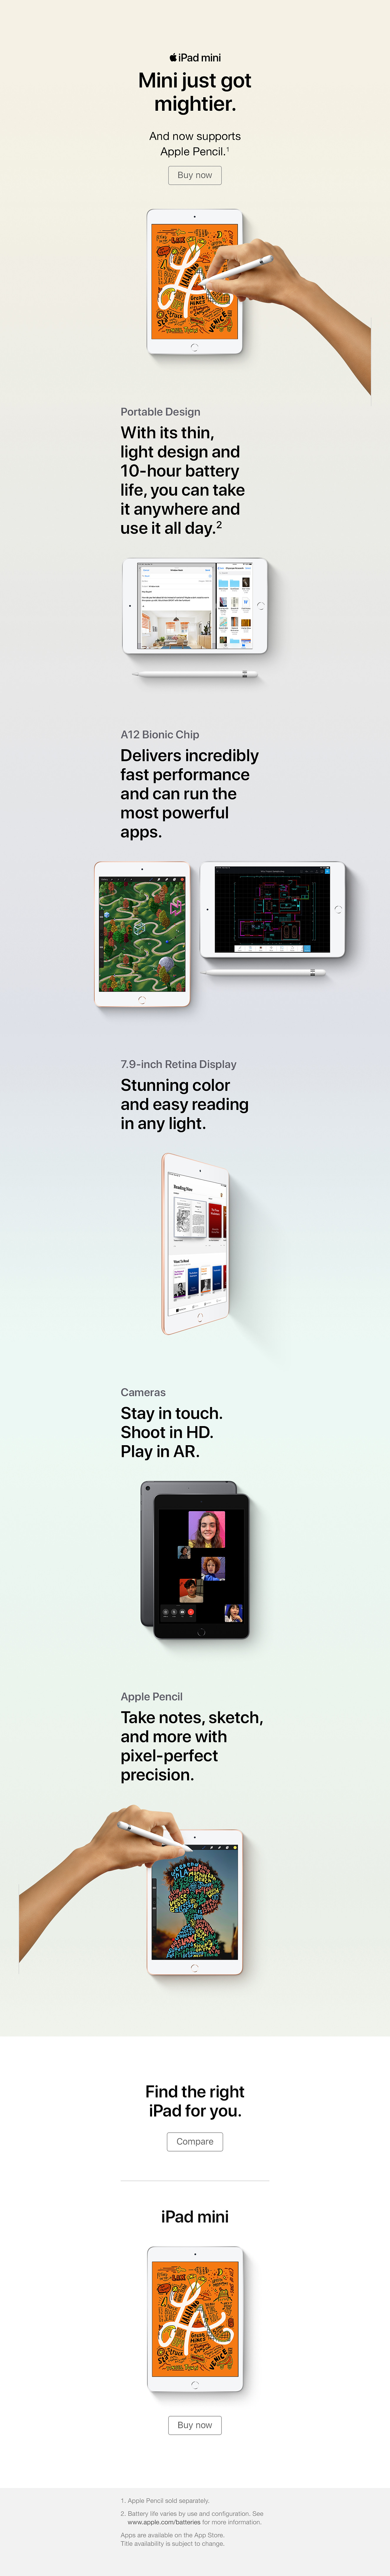 MEEN-iPad mini_r1218_OVERVIEW-PAGE-S_M_v